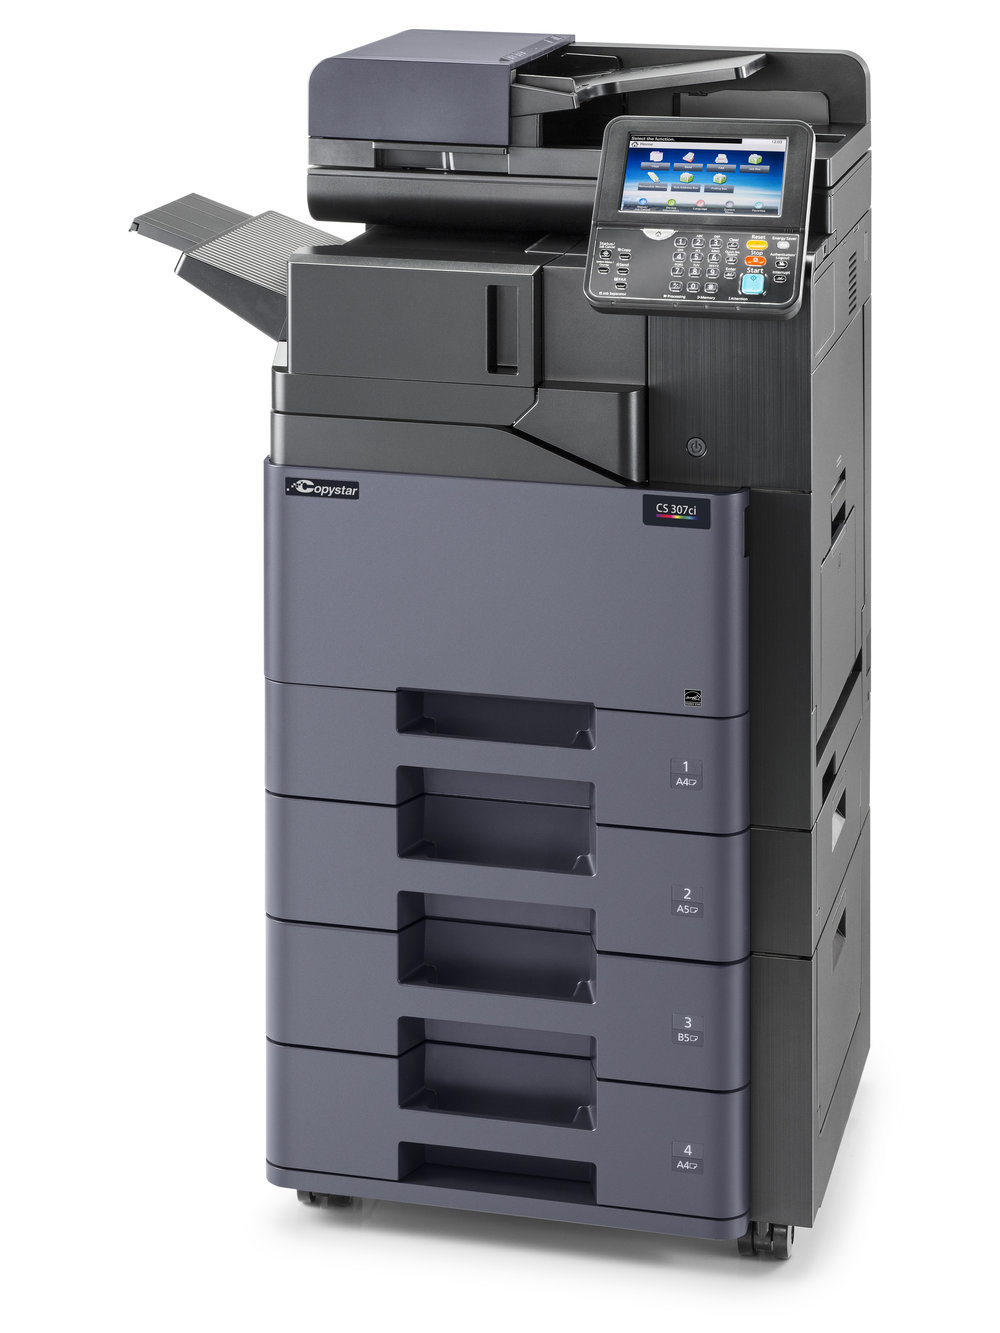 The CS 307ci with internal finisher and 2 x 500 sheet cassettes